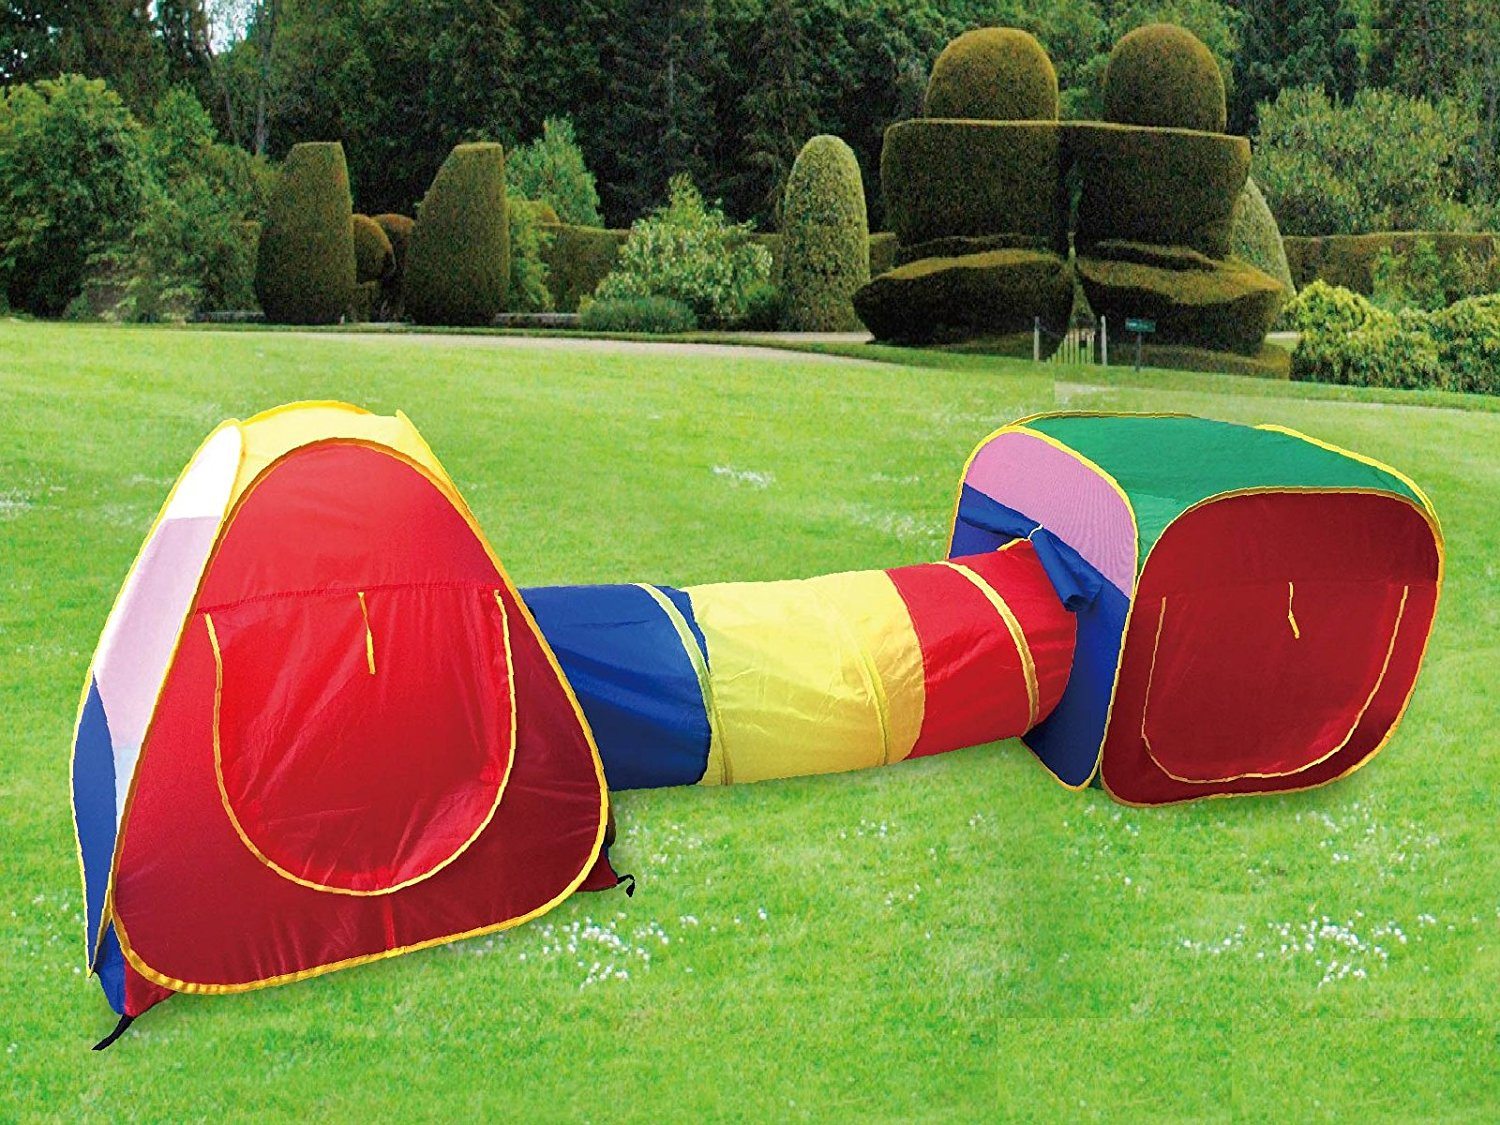 Cubby Tube Teepee Kids Play Tent And Tunnel Adventure Station - Bestter Choices Bestter Living & Cubby Tube Teepee Kids Play Tent And Tunnel Adventure Station ...